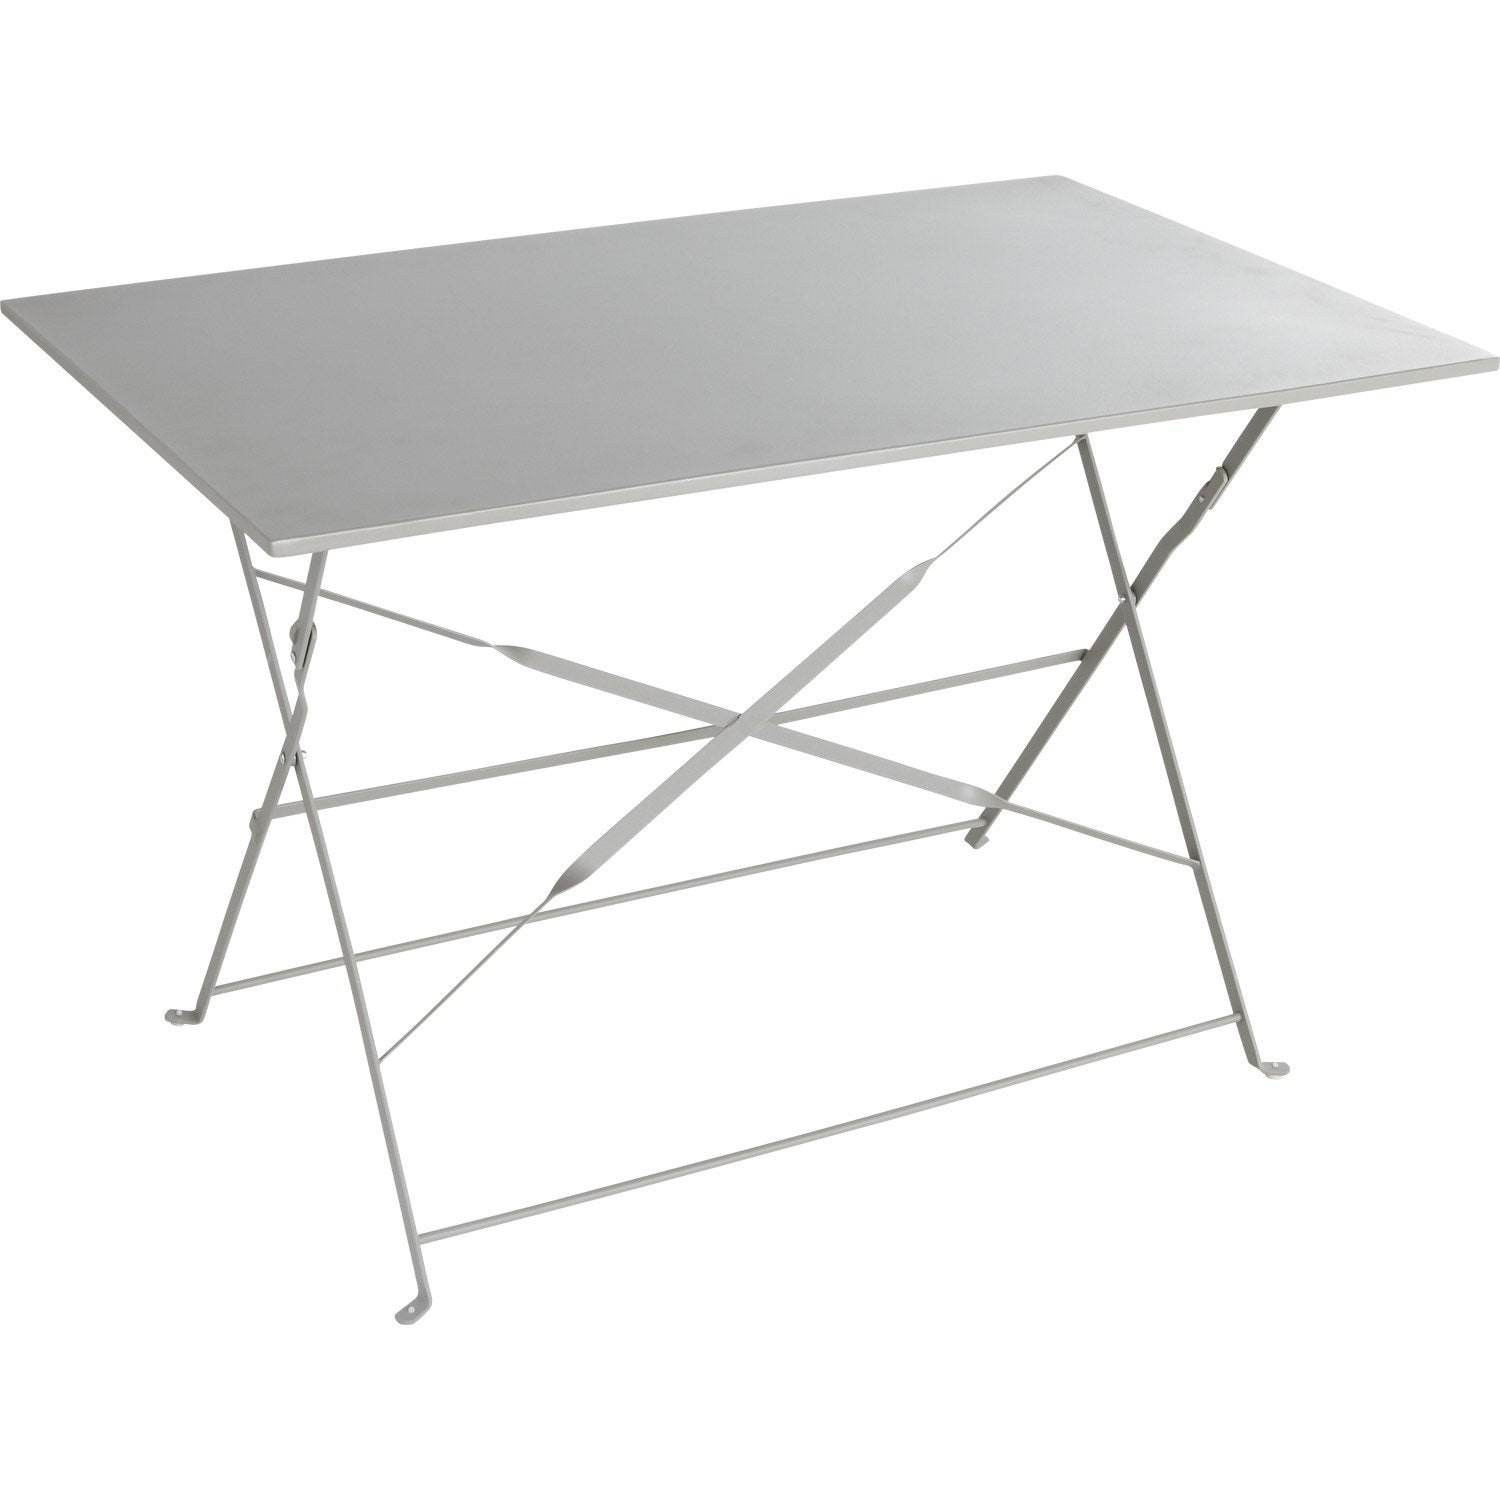 Table de jardin naterial flore rectangulaire gris 4 for Ocultacion jardin leroy merlin